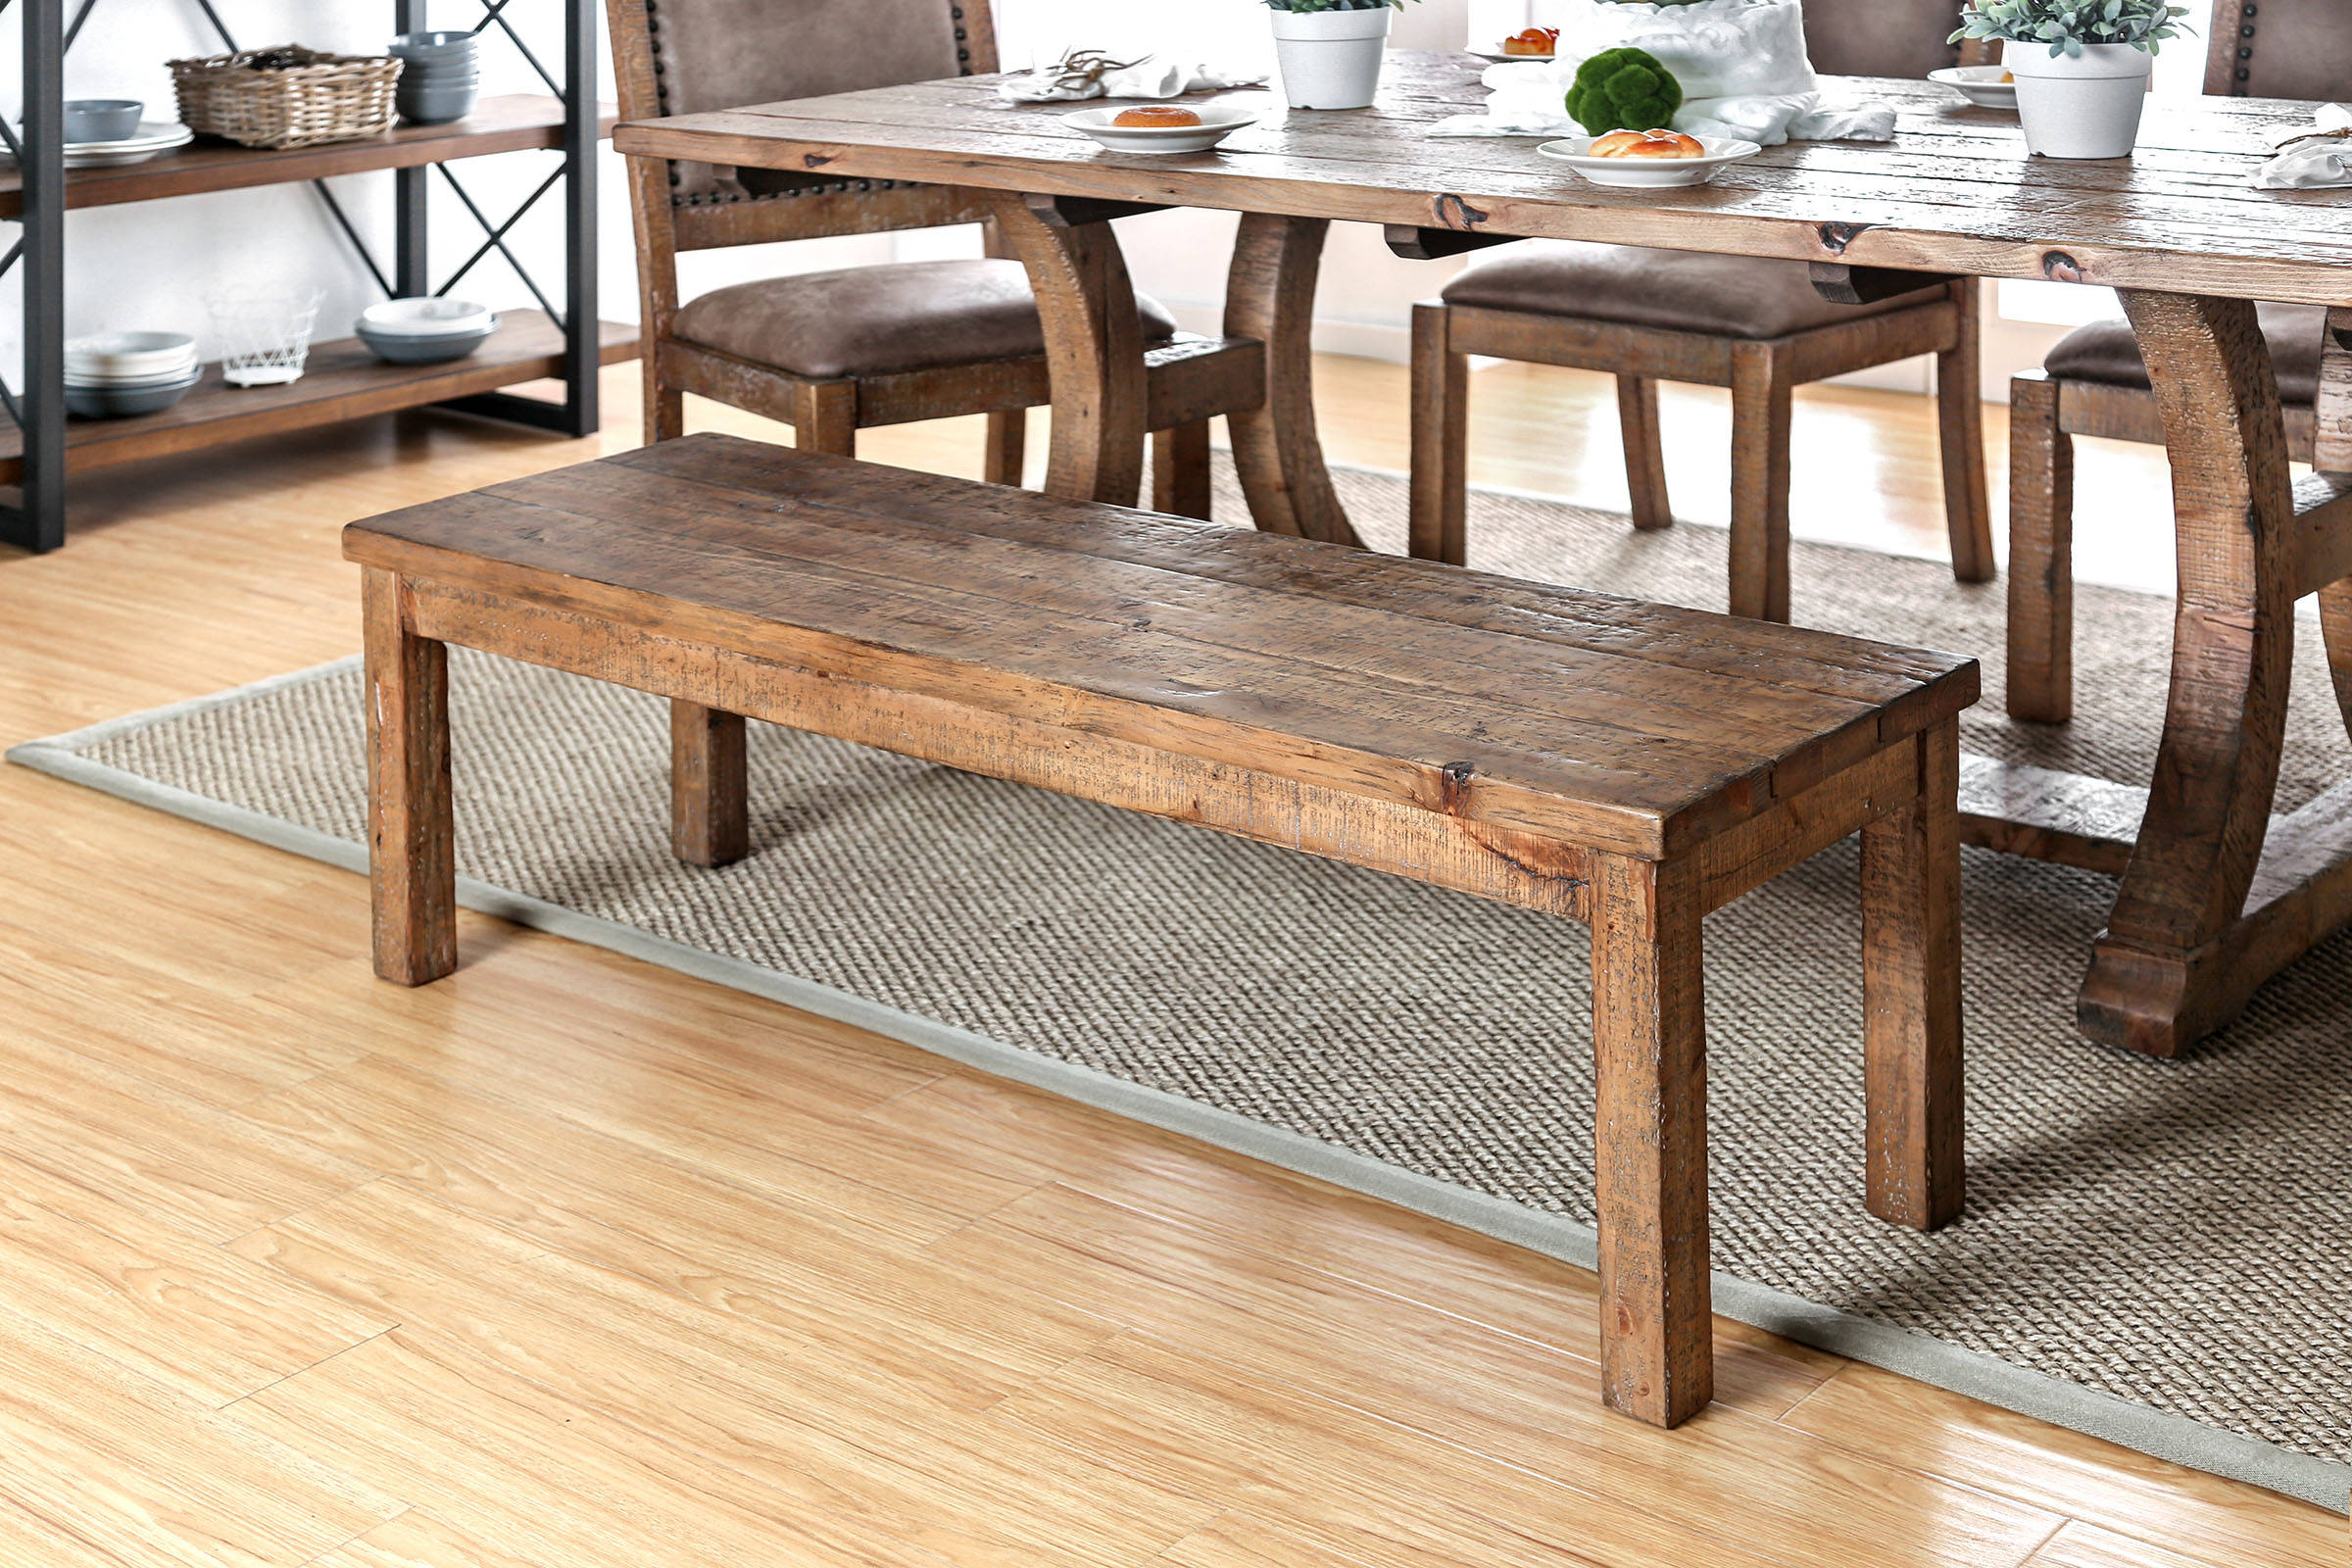 b8ad84381328 Furniture of America Gianna Wood Bench Click To Enlarge ...